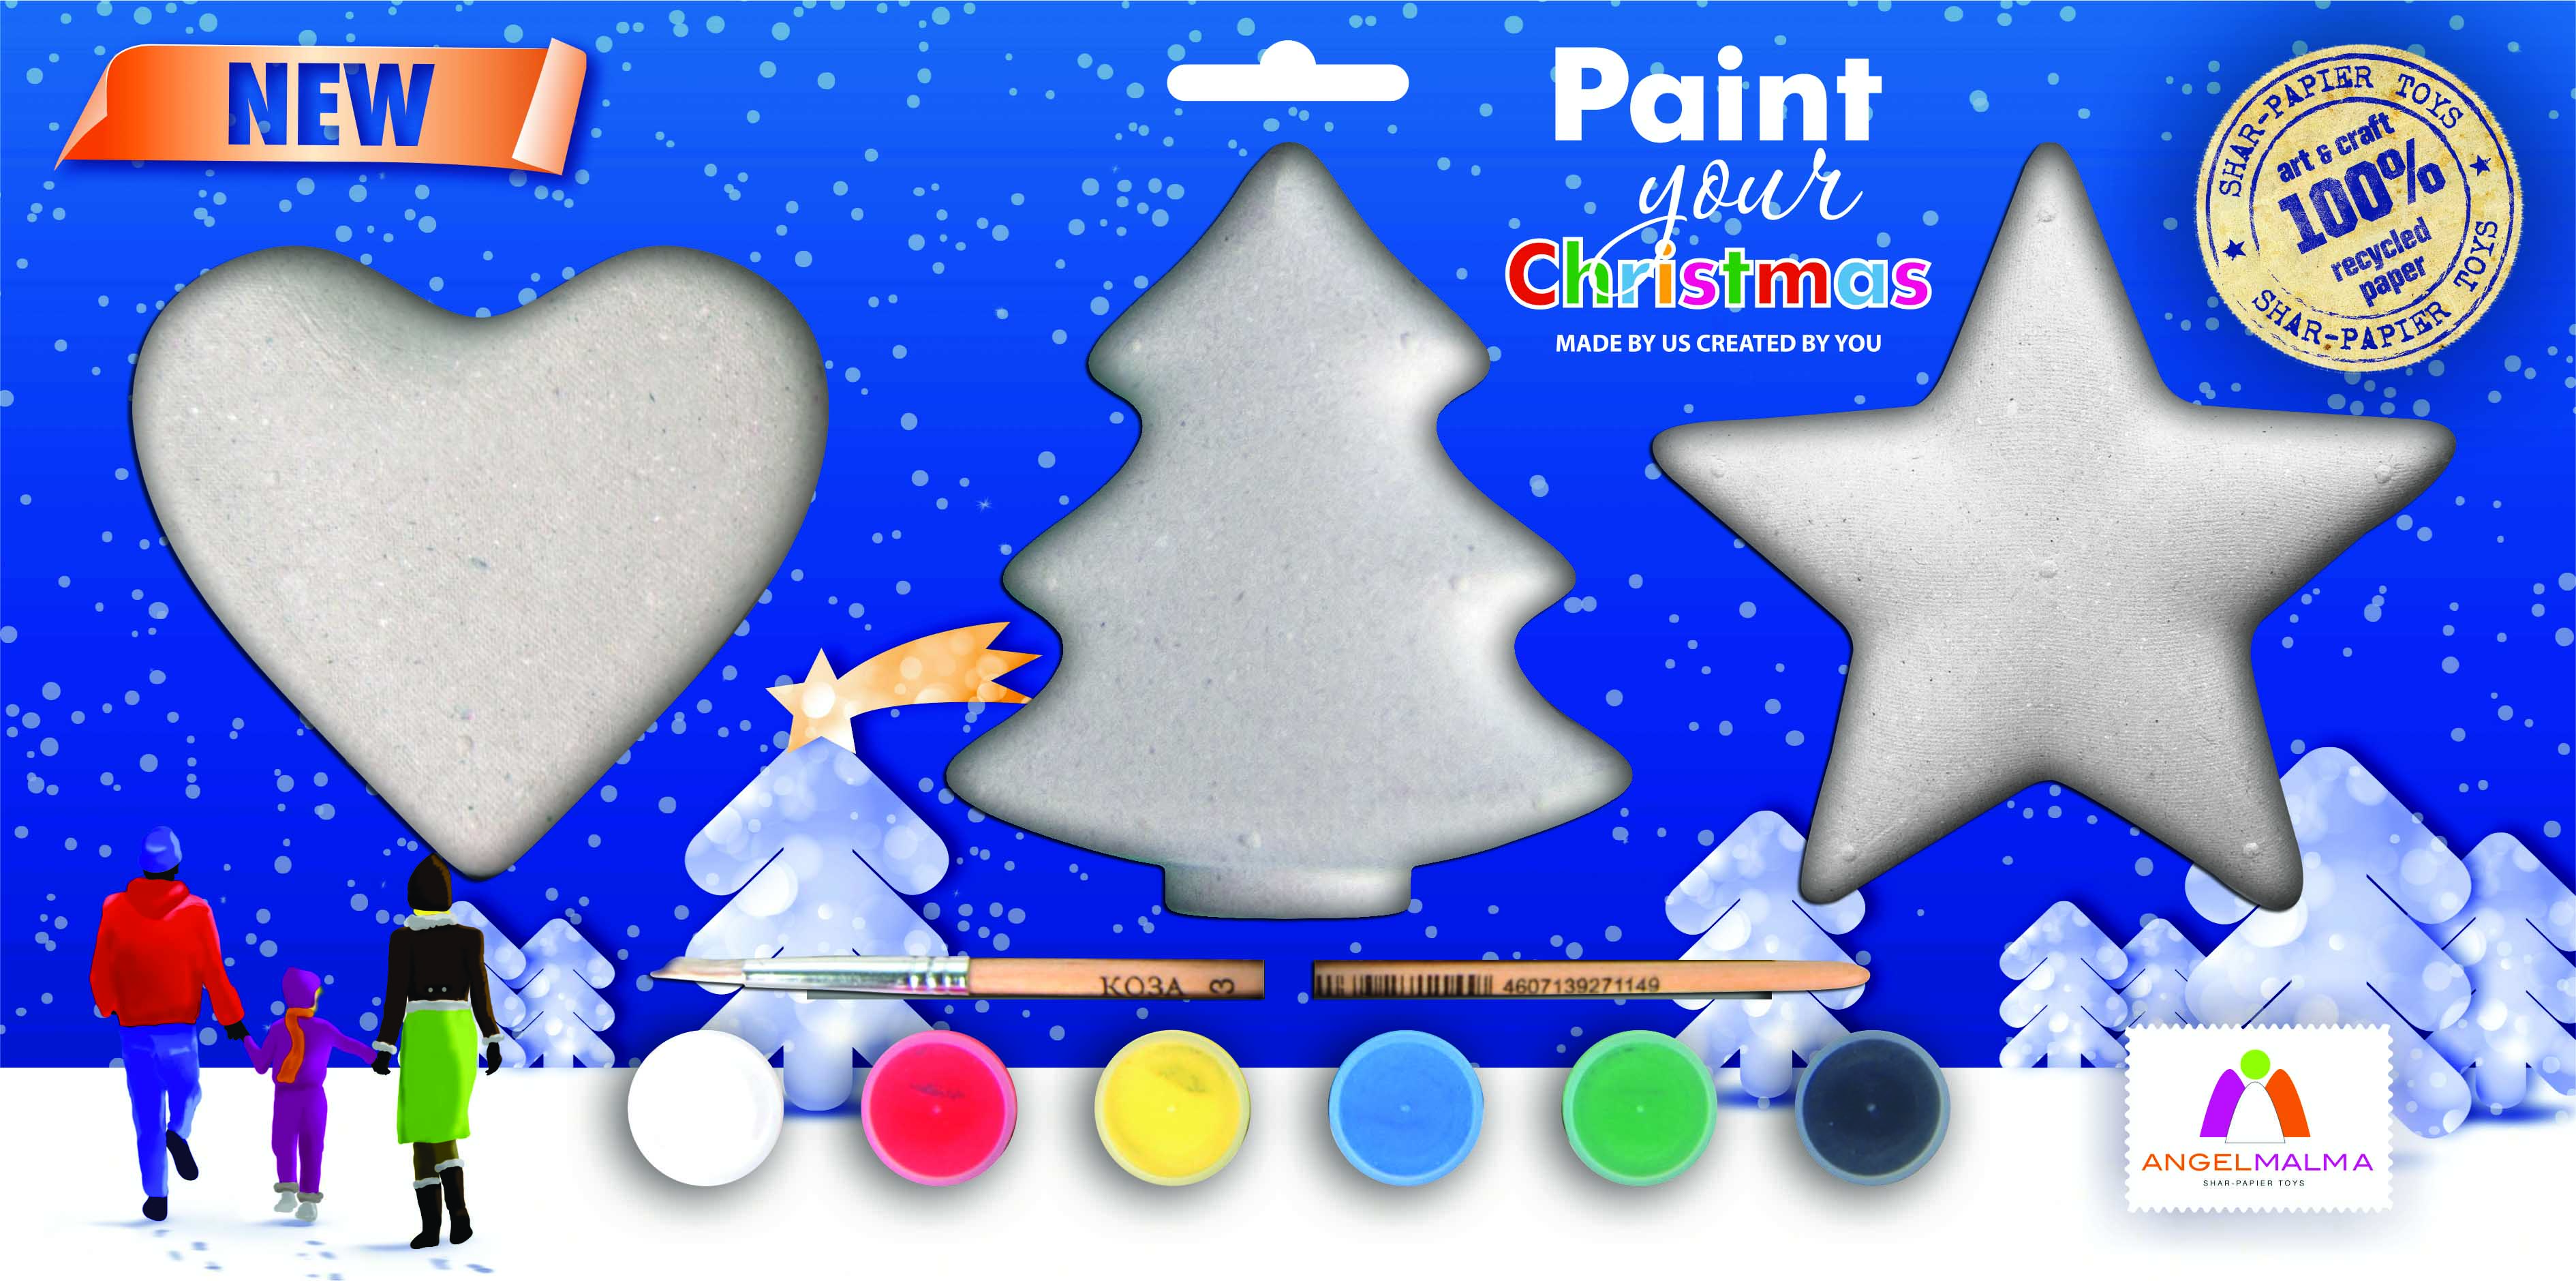 Paint your Christmas!